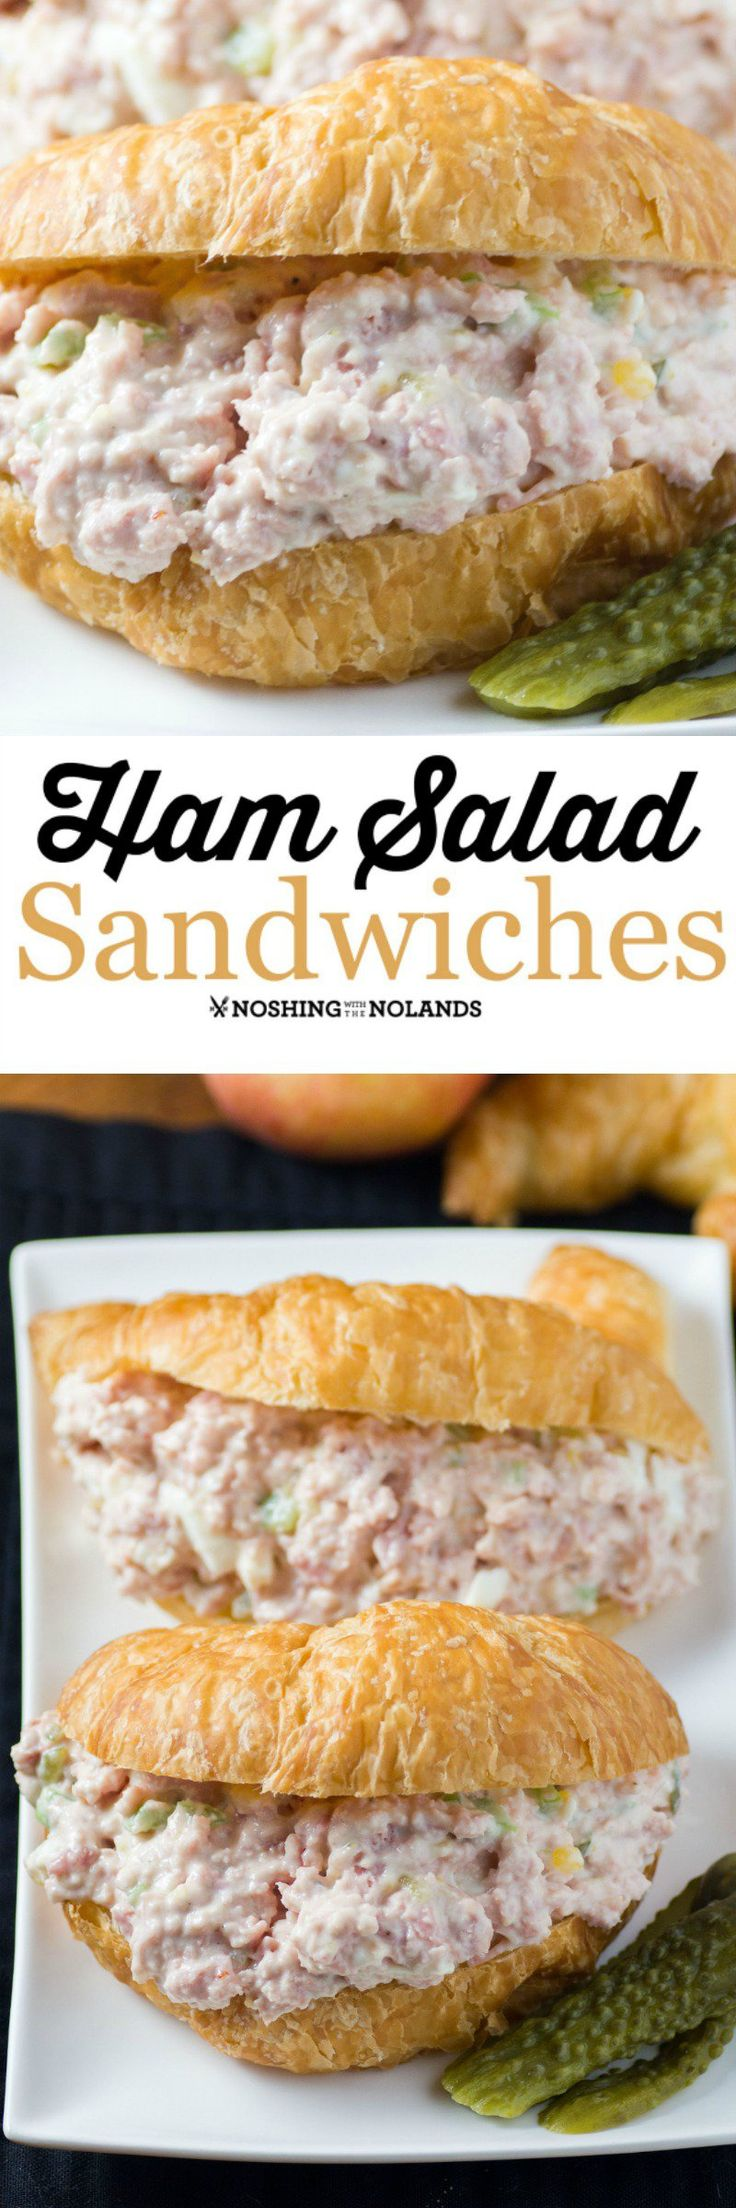 I have had this recipe kicking around for quite awhile now, Ham Salad Sandwich. It has been hanging out on my desk ever since I made it for a party.